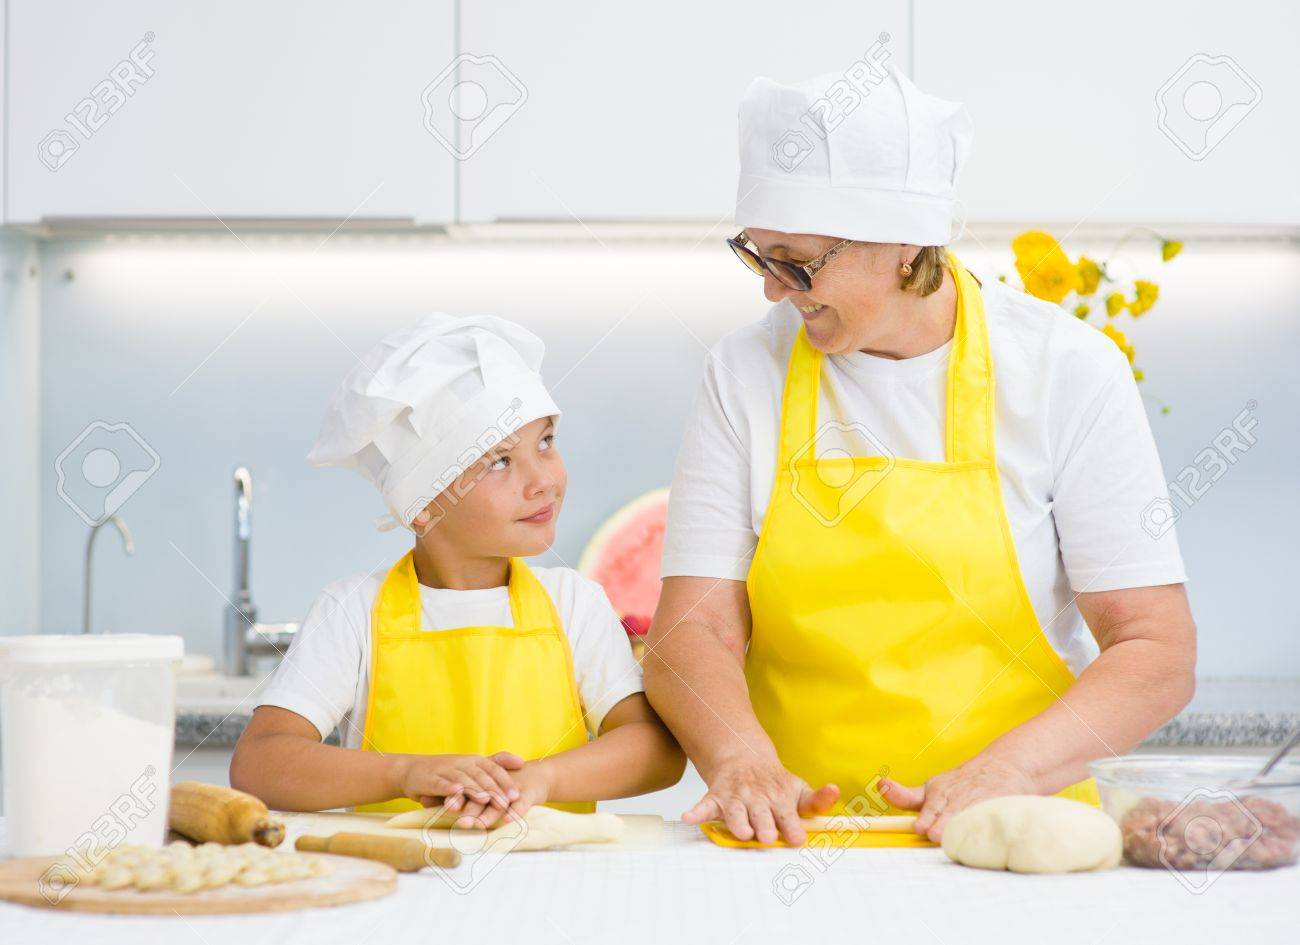 Grandma And Grandson Prepare Food At Home In The Kitchen. Stock ...